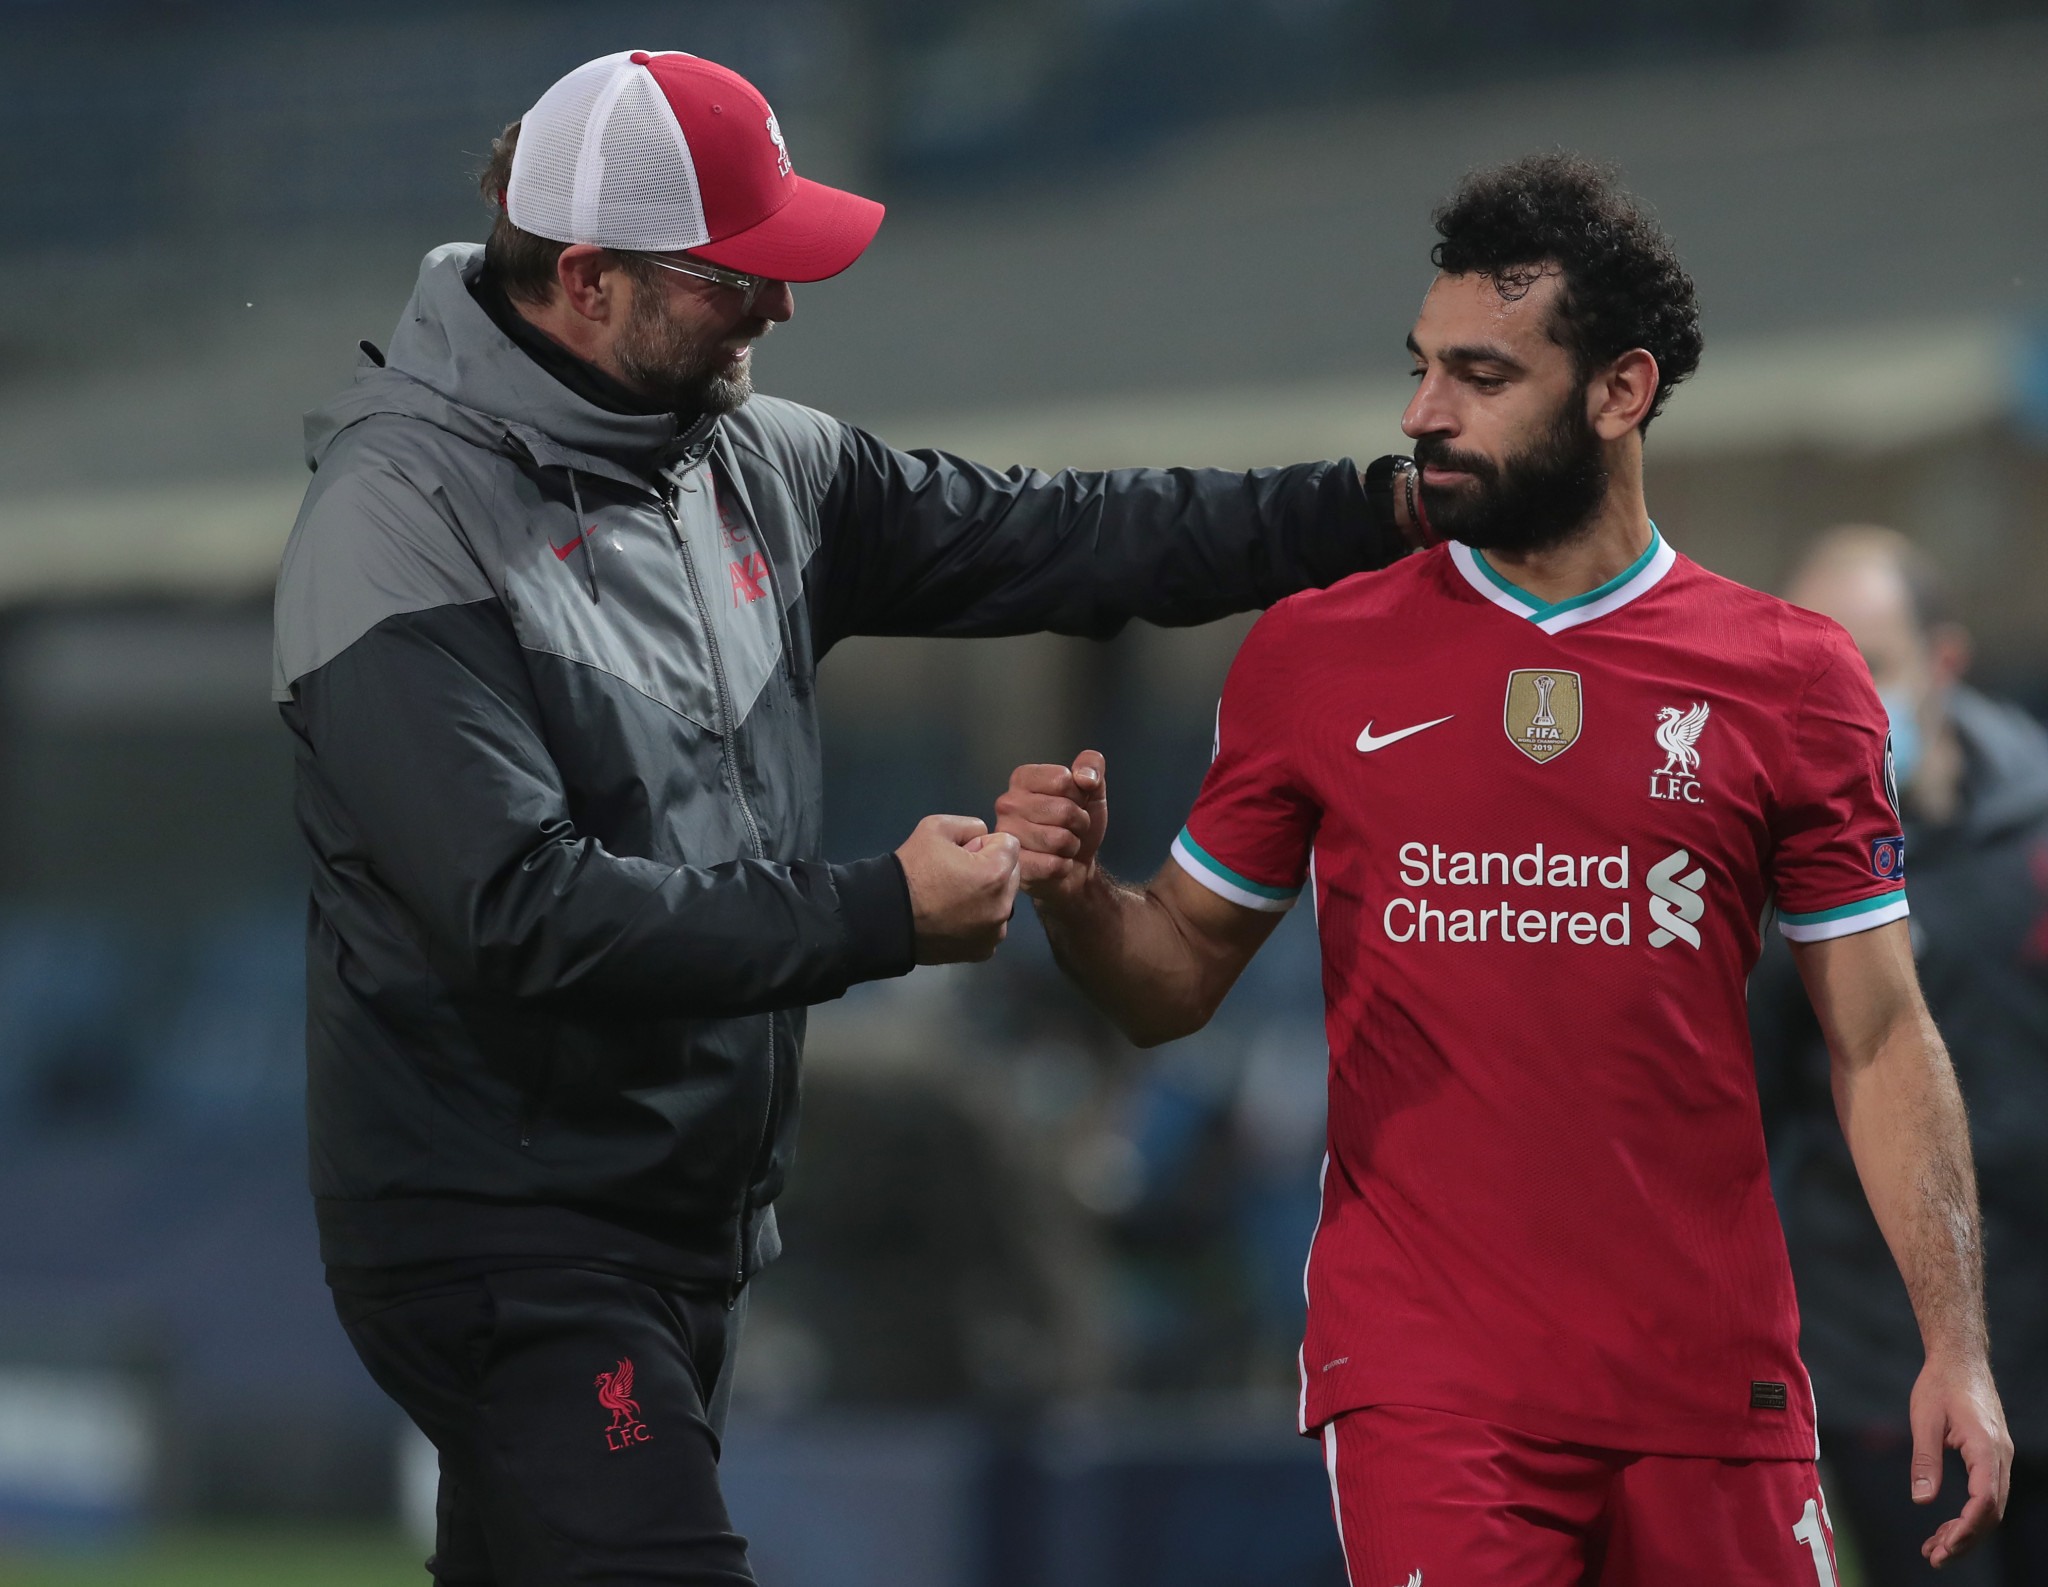 Egypt will seek Liverpool approval over potential Salah call-up for Tokyo 2020 Olympics